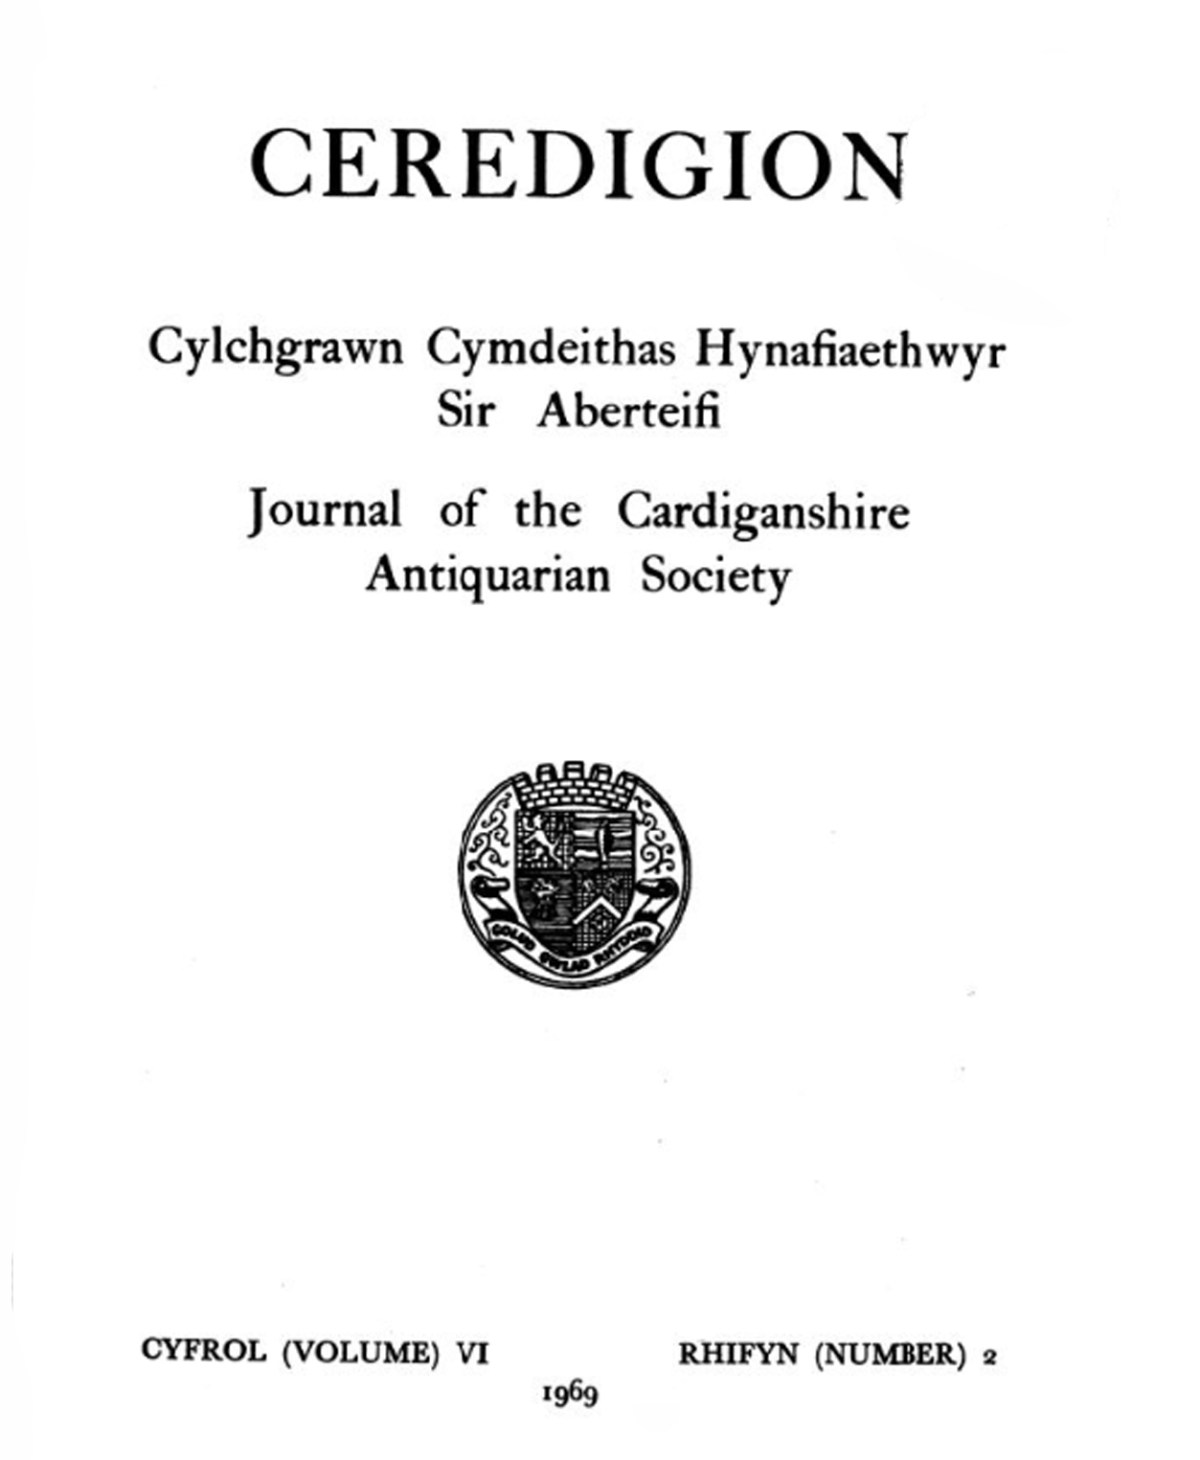 Ceredigion – Journal of the Cardiganshire Antiquarian Society, 1969 Vol VI No 2